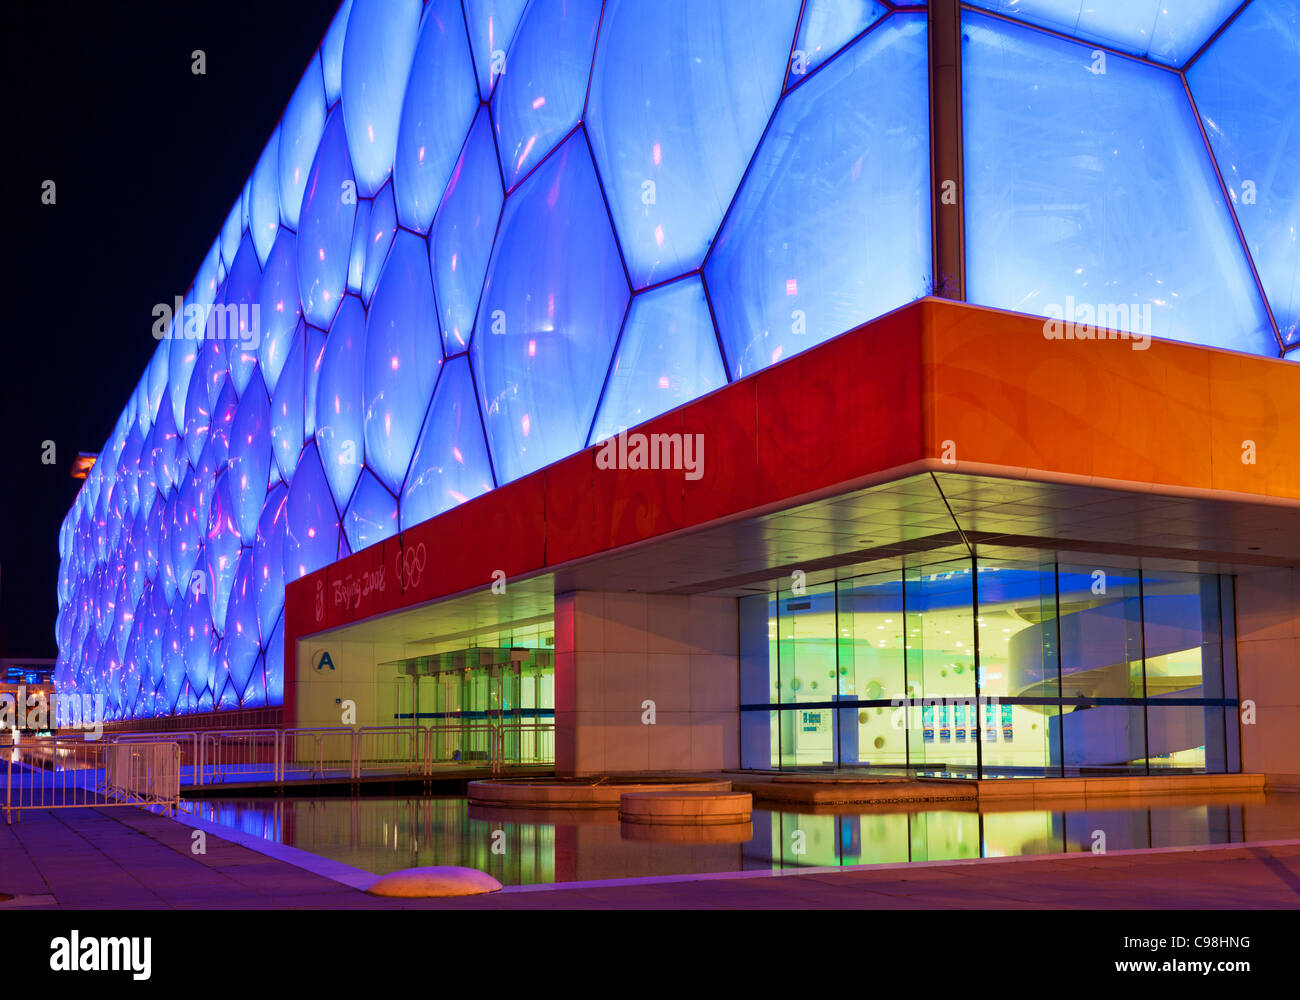 The Water Cube National Aquatics Center swimming arena in the Olympic Park, Beijing, Peoples Republic of China, Stock Photo